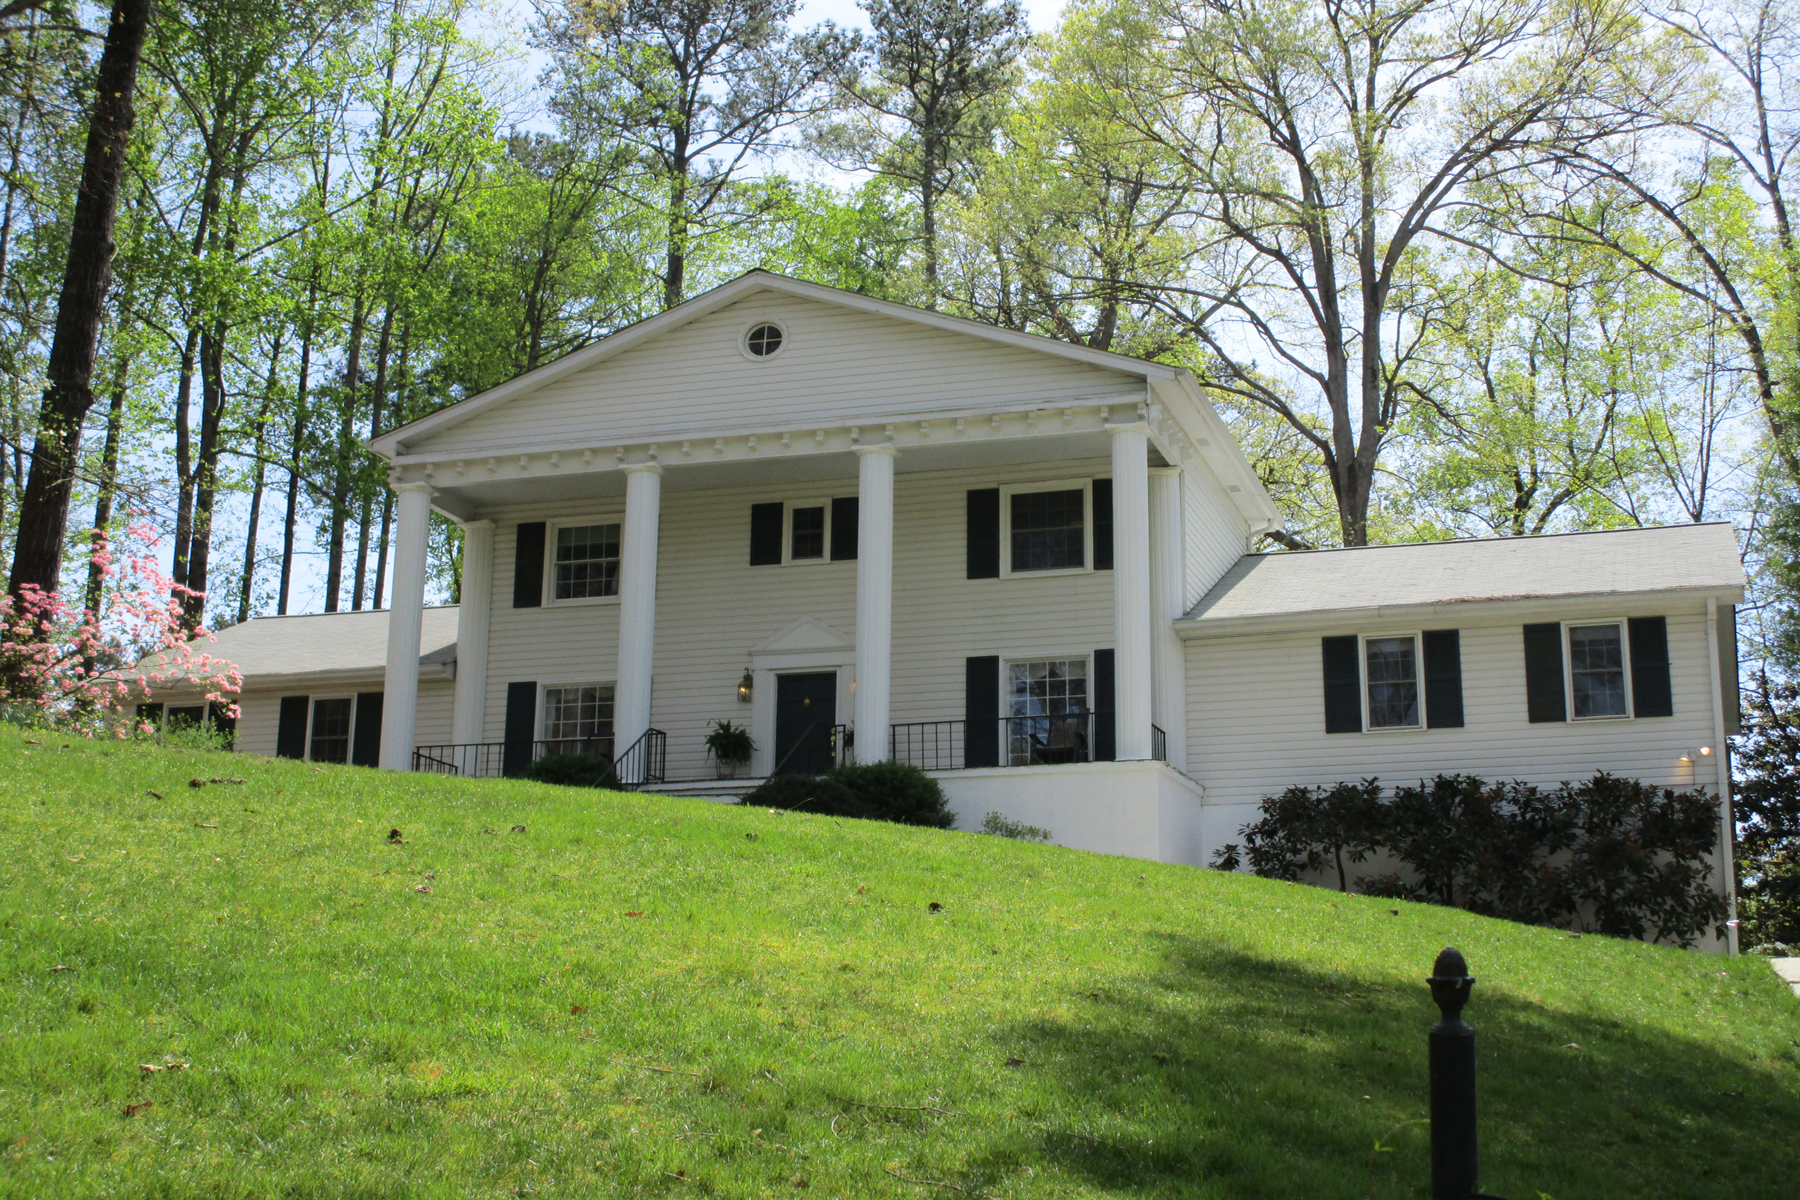 Single Family Home for Sale at Private Home In True Vinings 2850 Vinings Way SE Atlanta, Georgia, 30339 United States